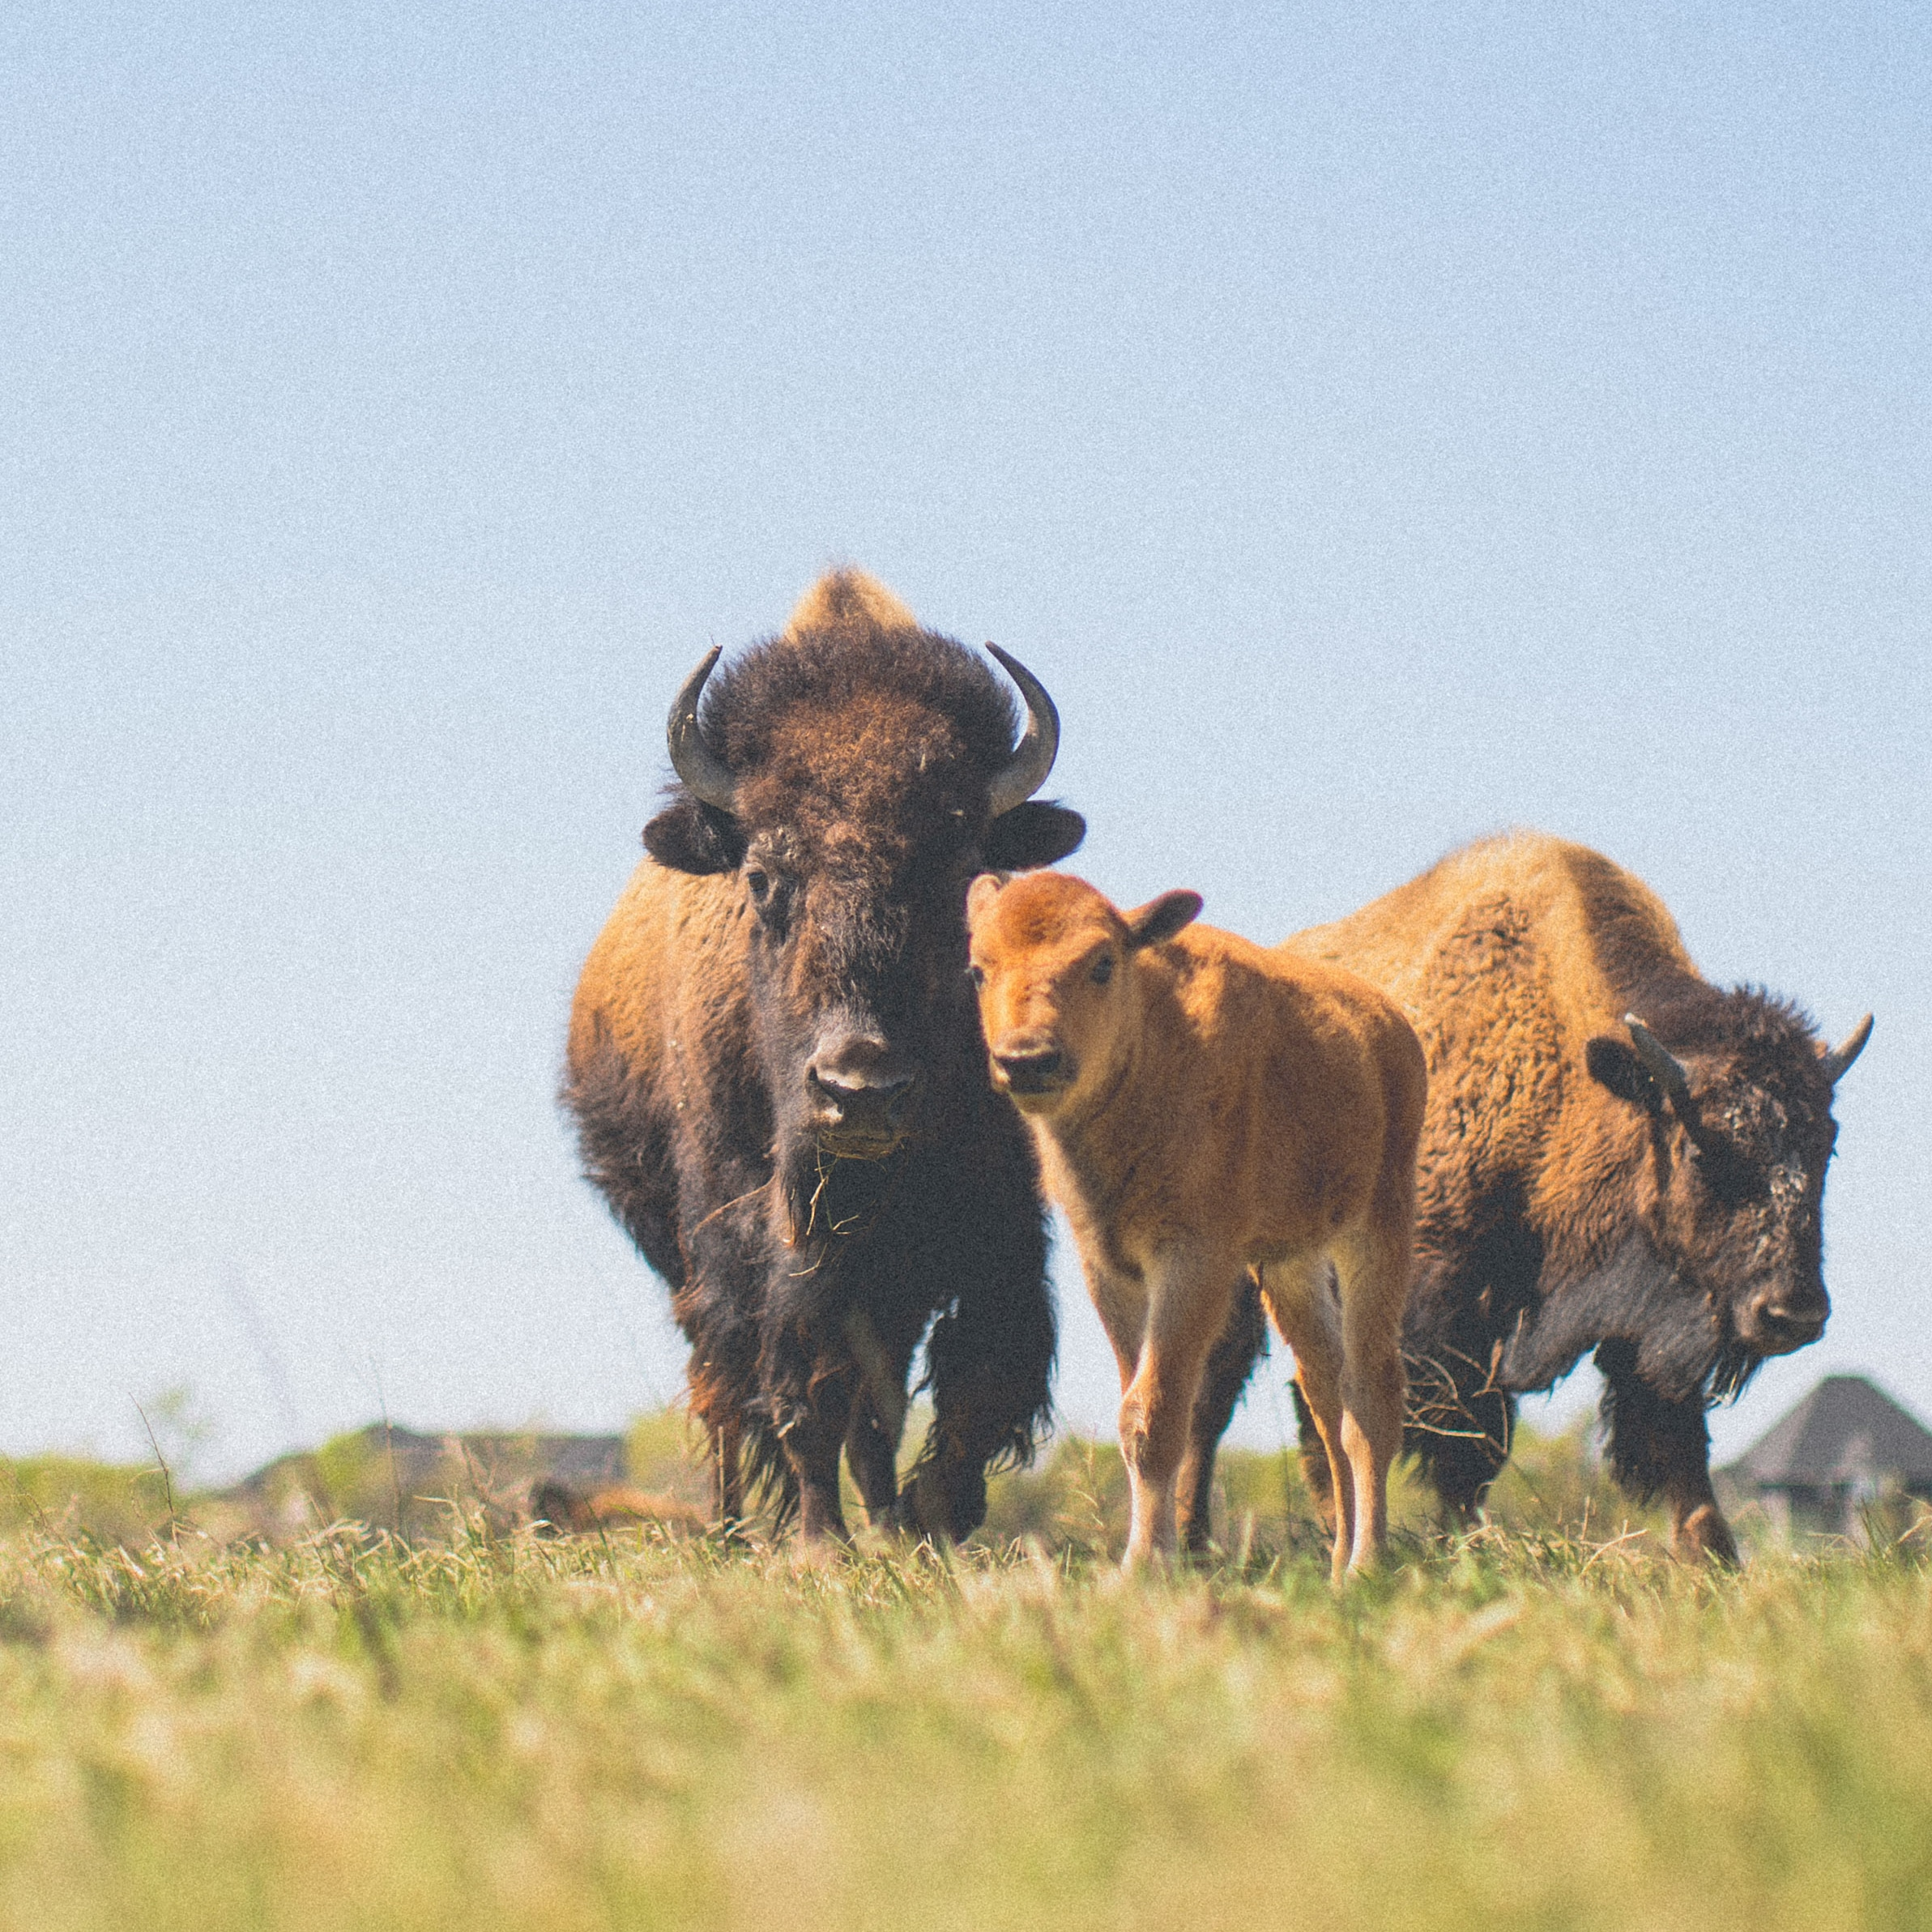 A baby bison and its mother stand in the field looking at the camera.